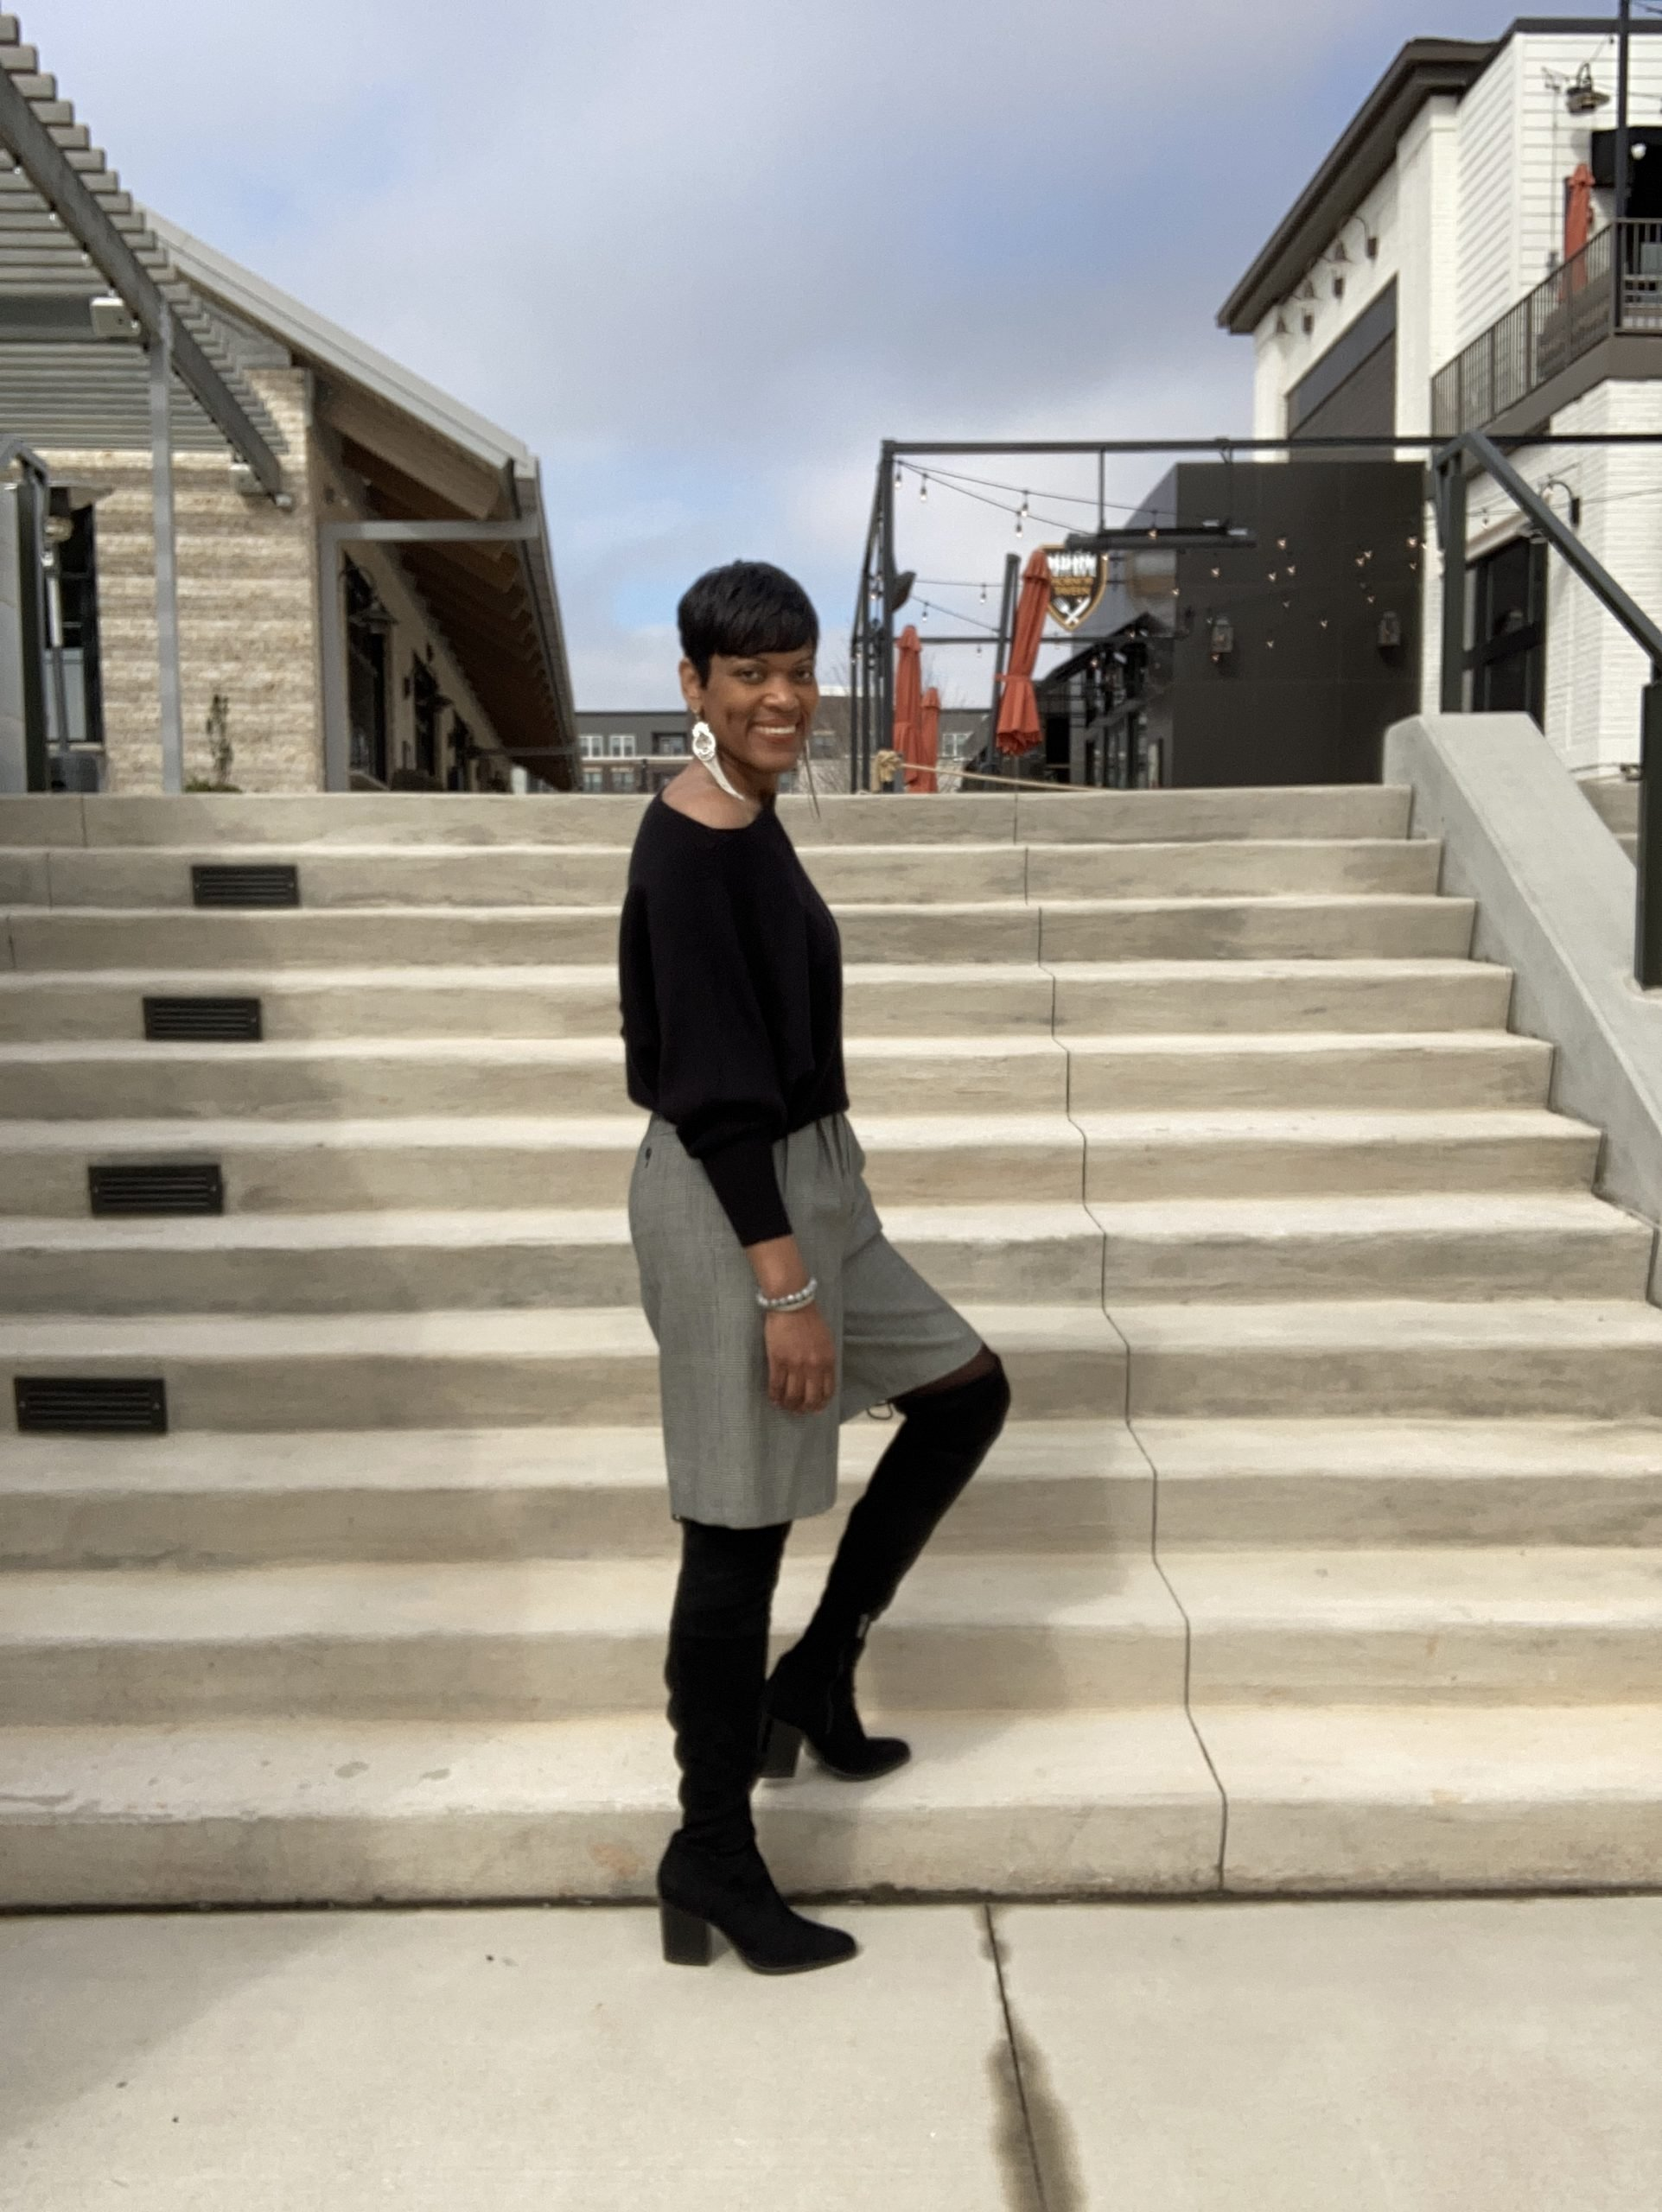 woman posing in thrifted shorts on stairs